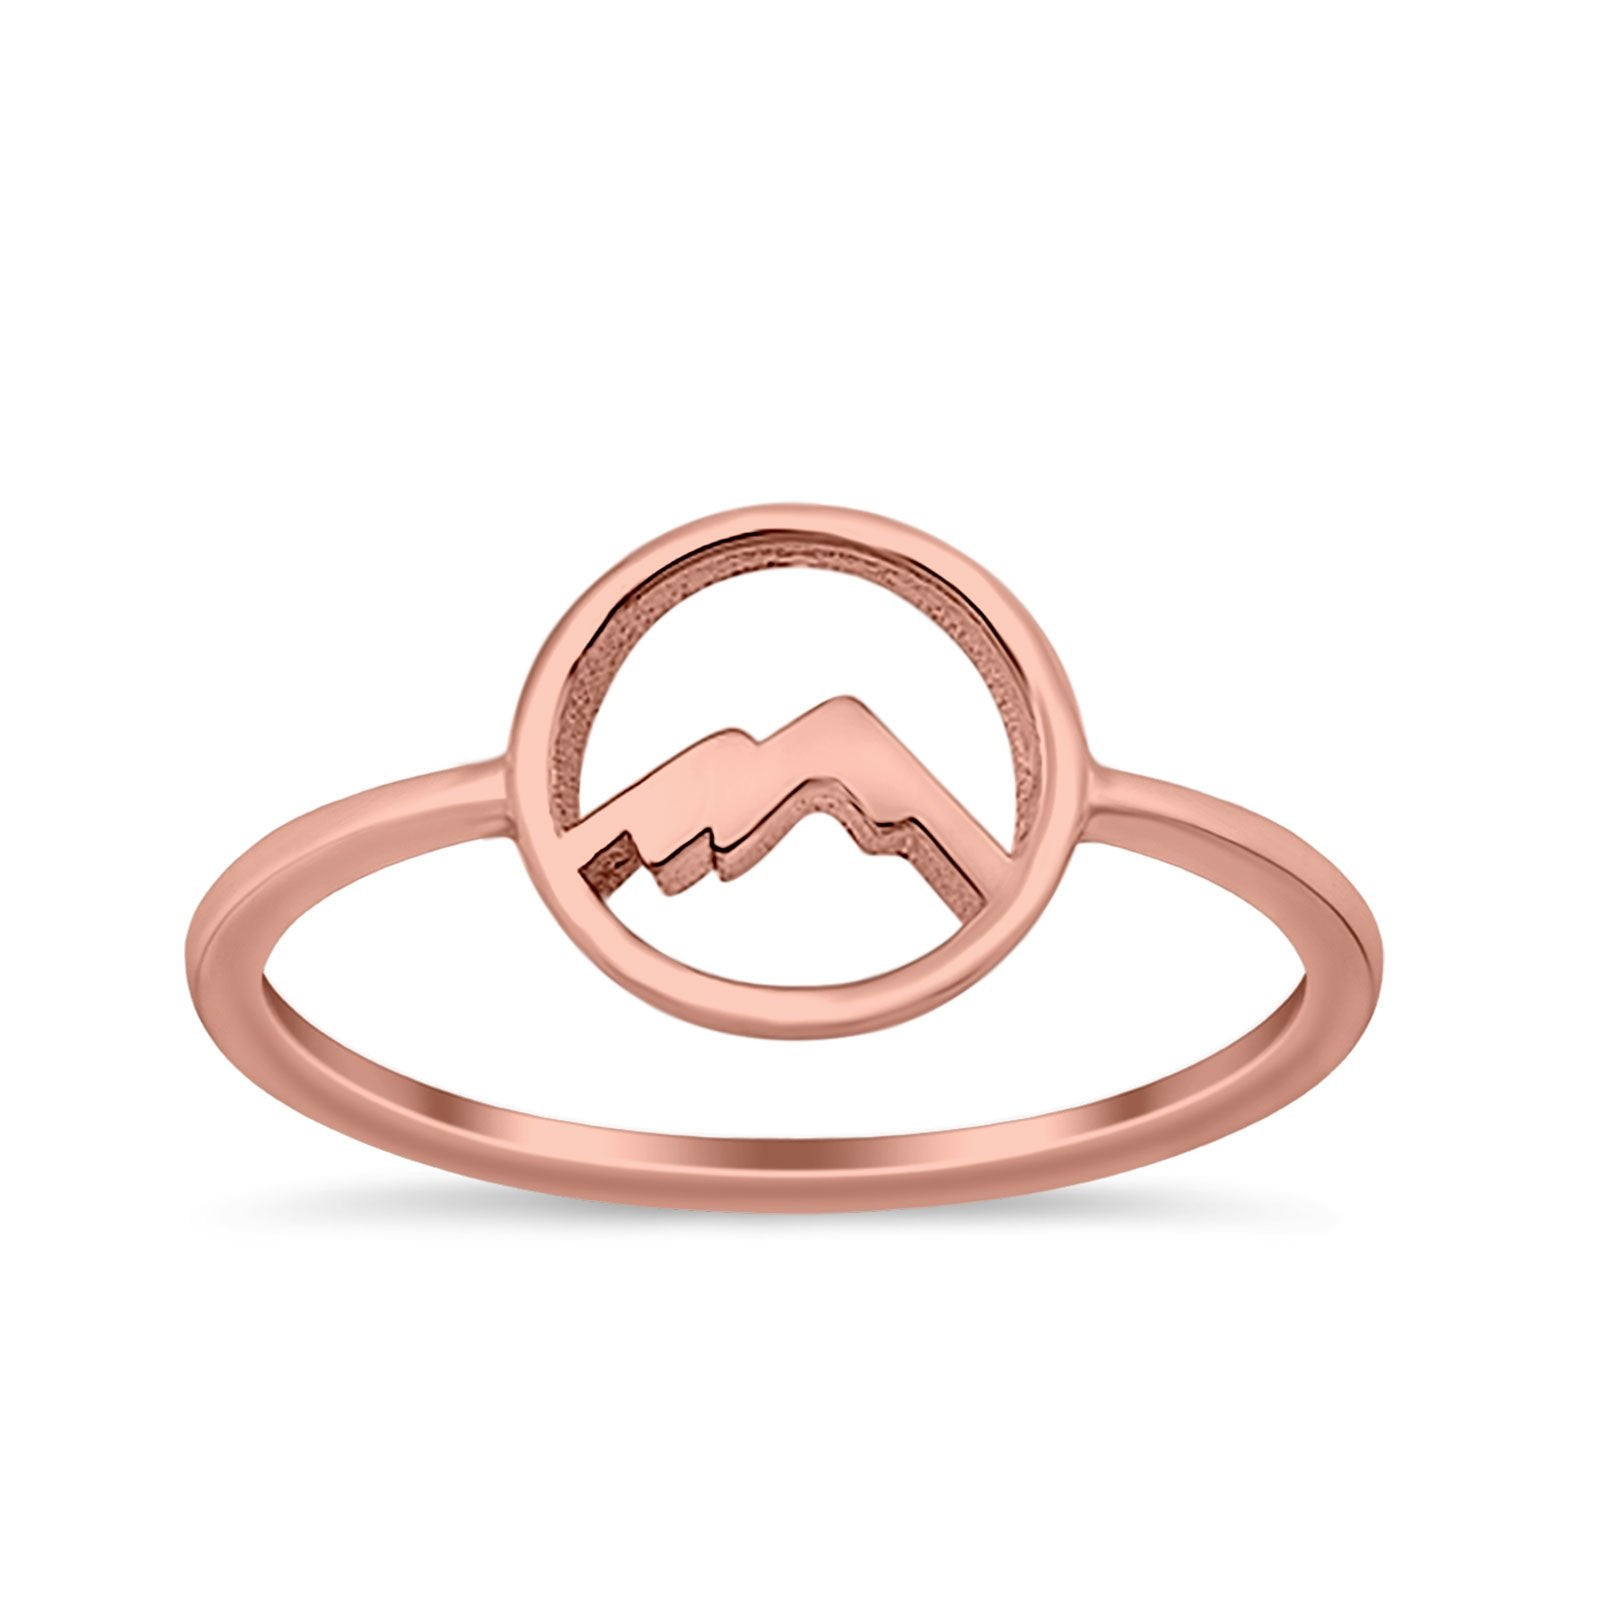 Mountain Fashion Petite Dainty Plain Ring Solid 925 Sterling Silver